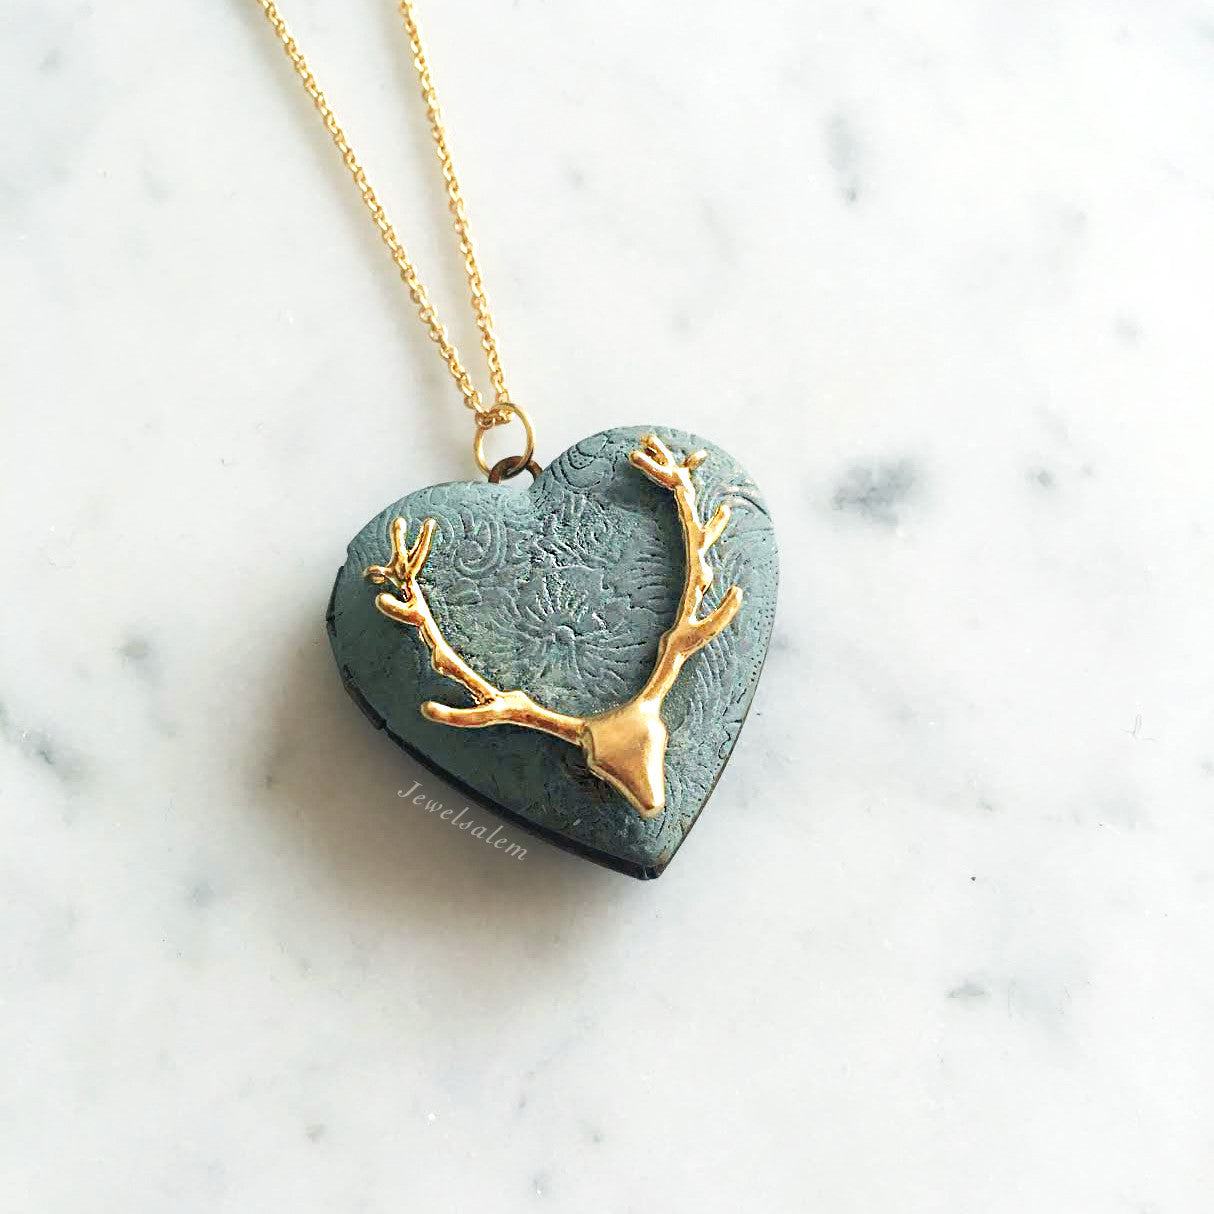 Antler Locket - Jewelsalem